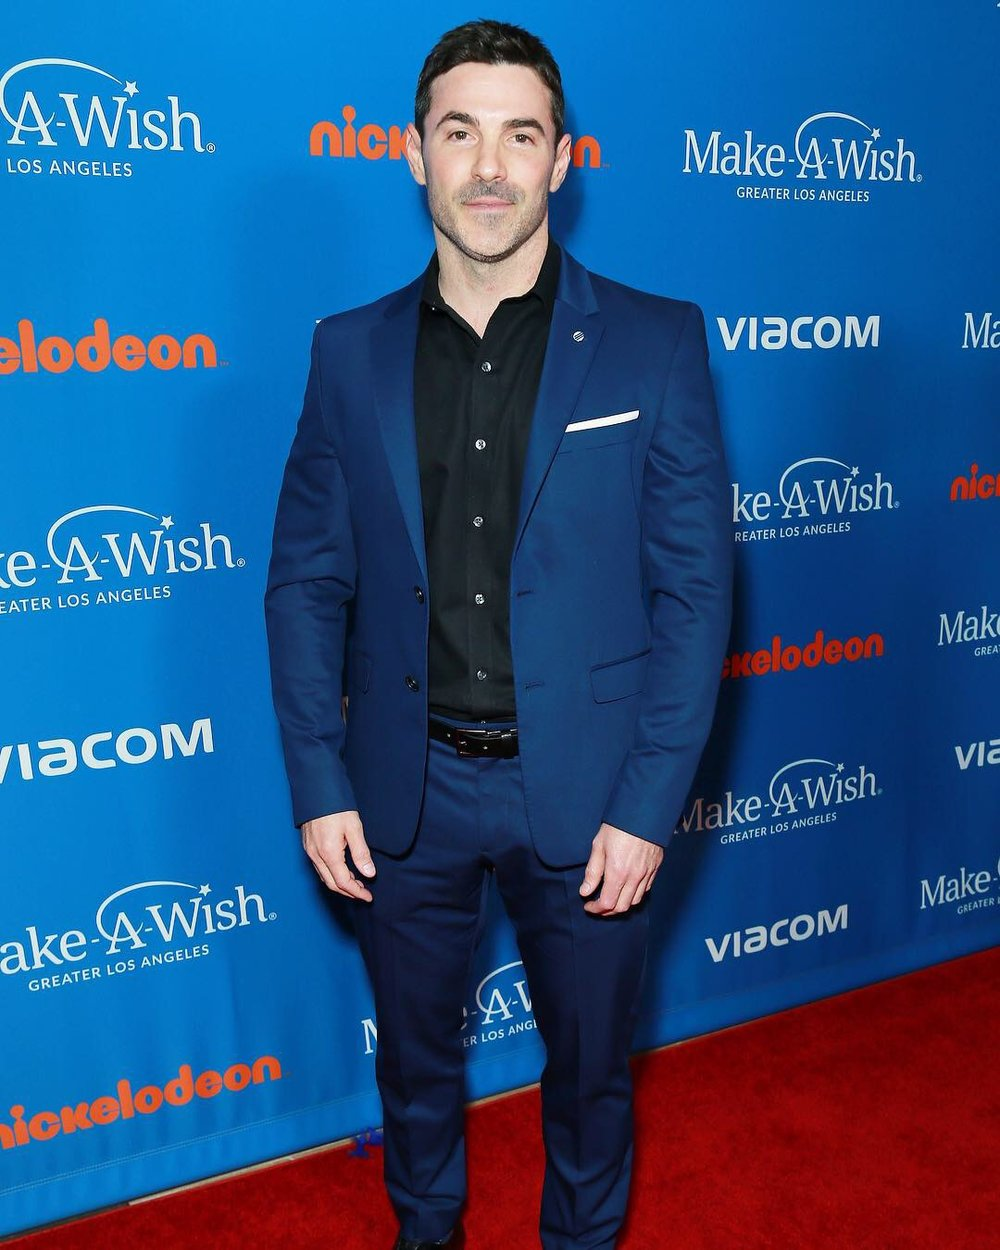 Josh arrives to represent Nickelodeon at the Wish Gala 2018